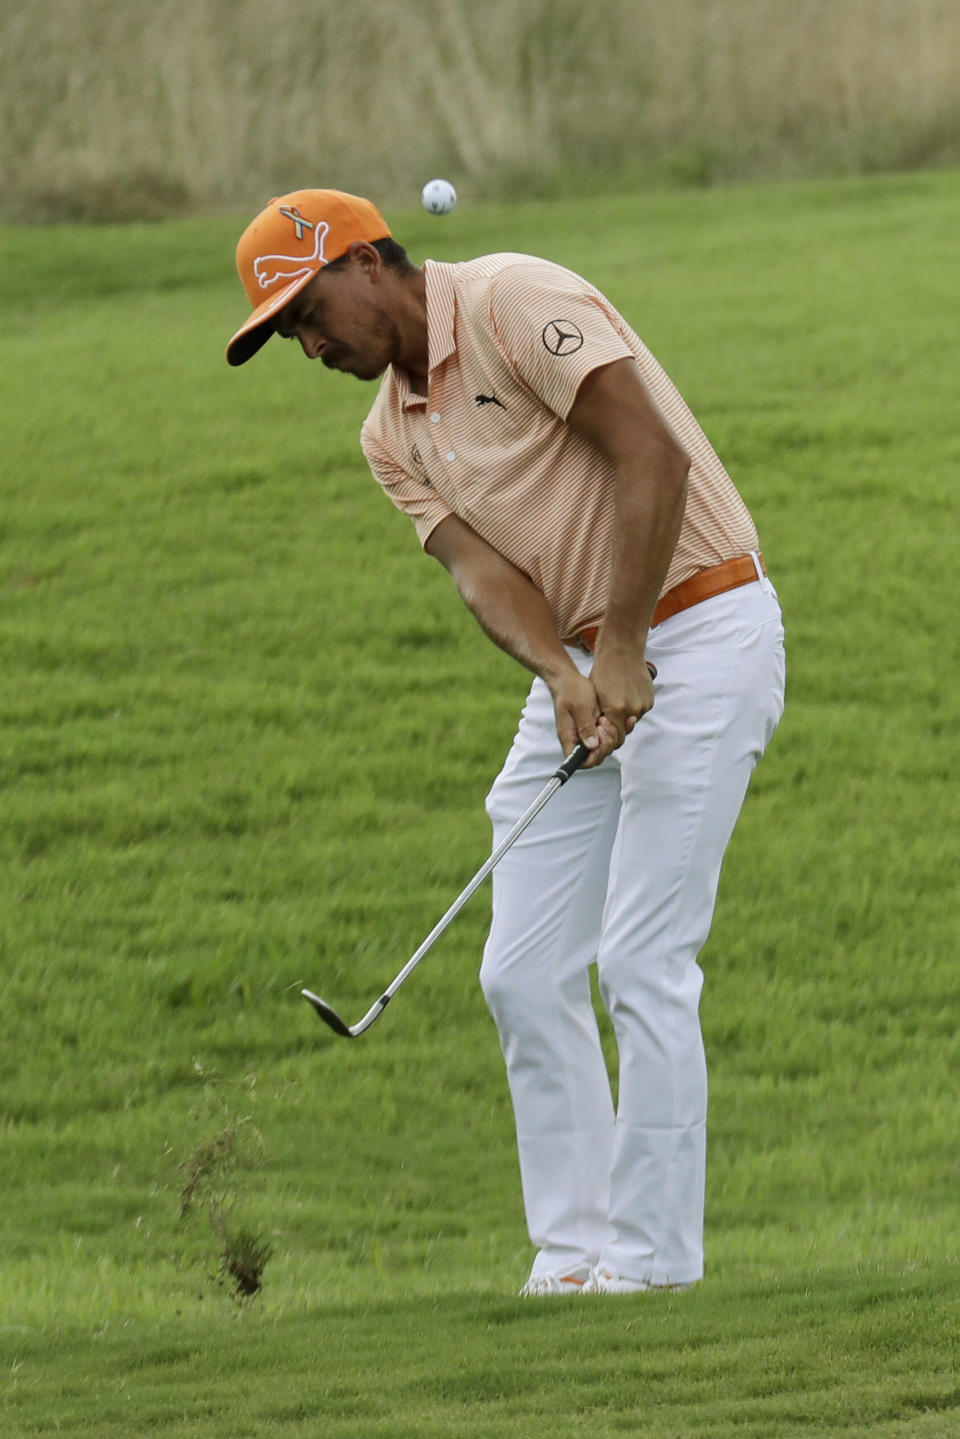 Rickie Fowler hits from the rough on the seventh hole during the final round of the World Golf Championship-FedEx St. Jude Invitational Sunday, Aug. 2, 2020, in Memphis, Tenn. (AP Photo/Mark Humphrey)